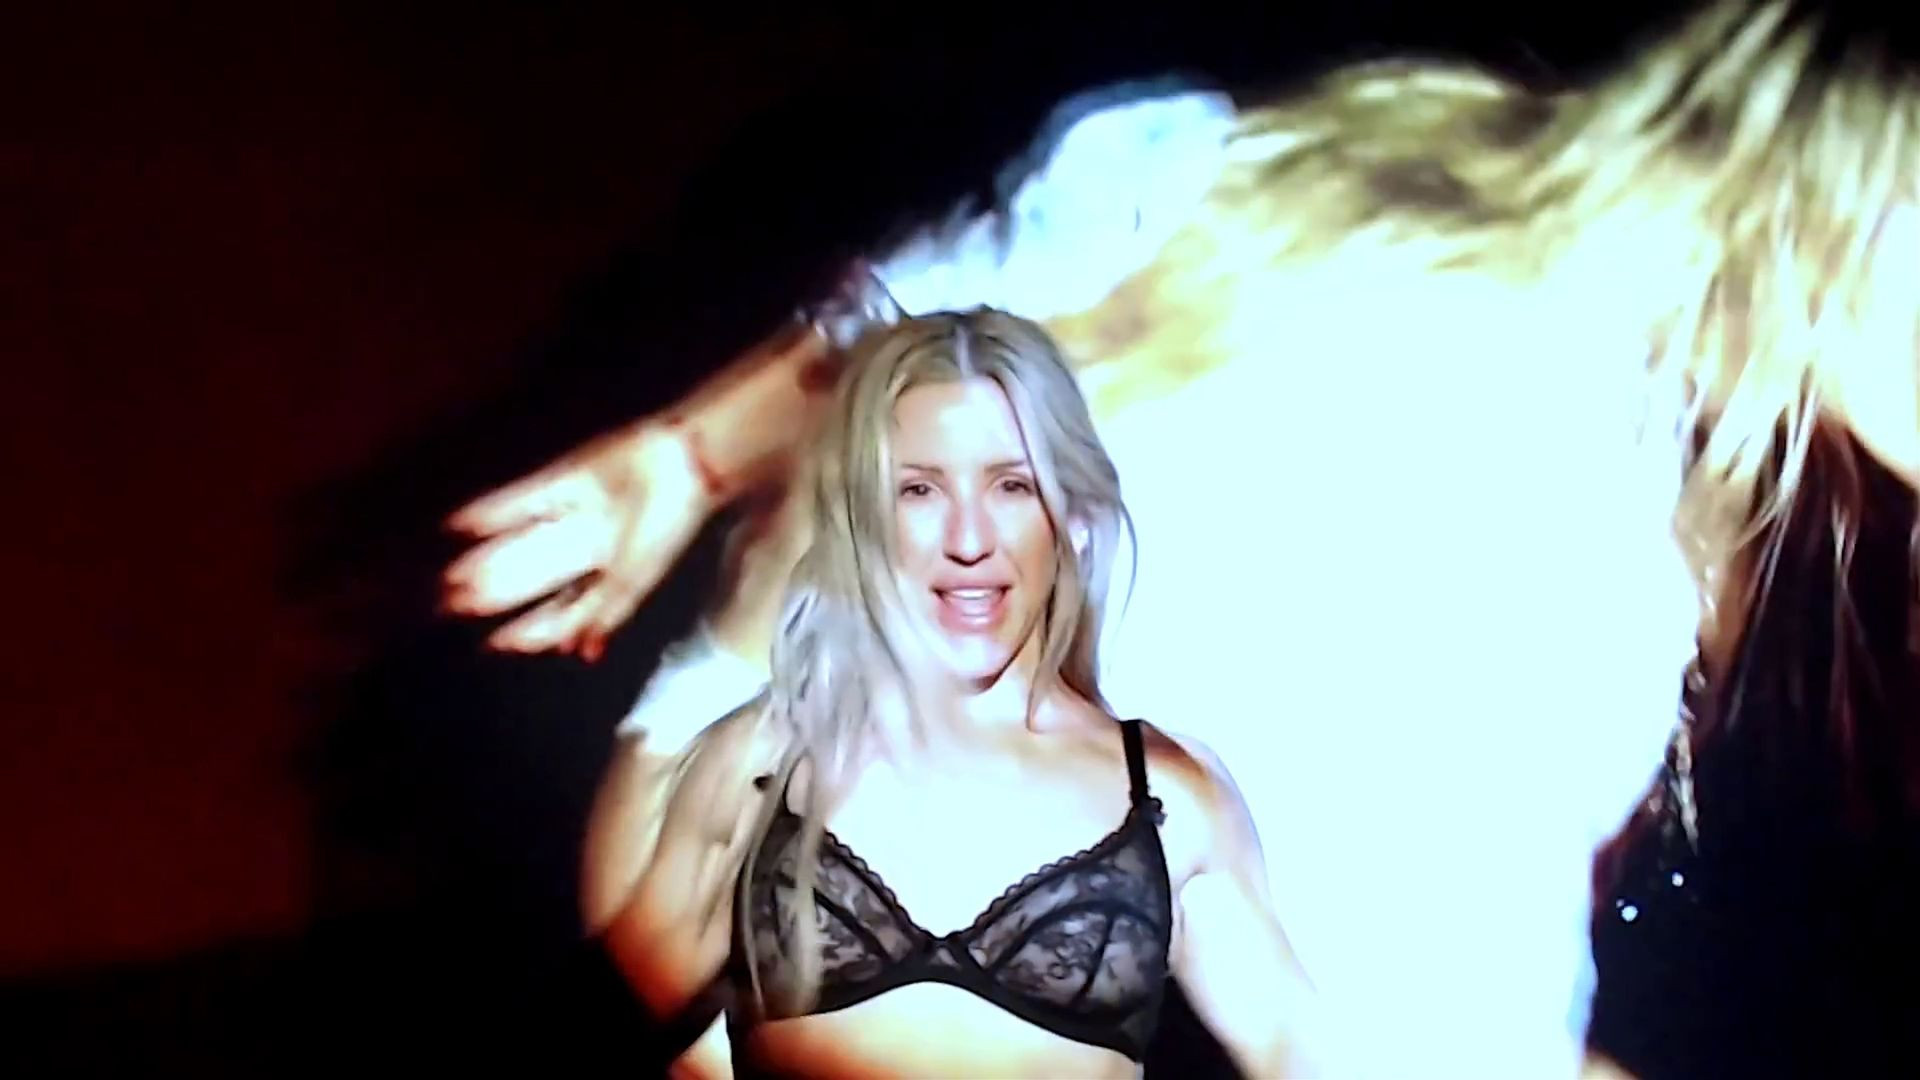 Ellie Goulding Sexy fappenings.com 15